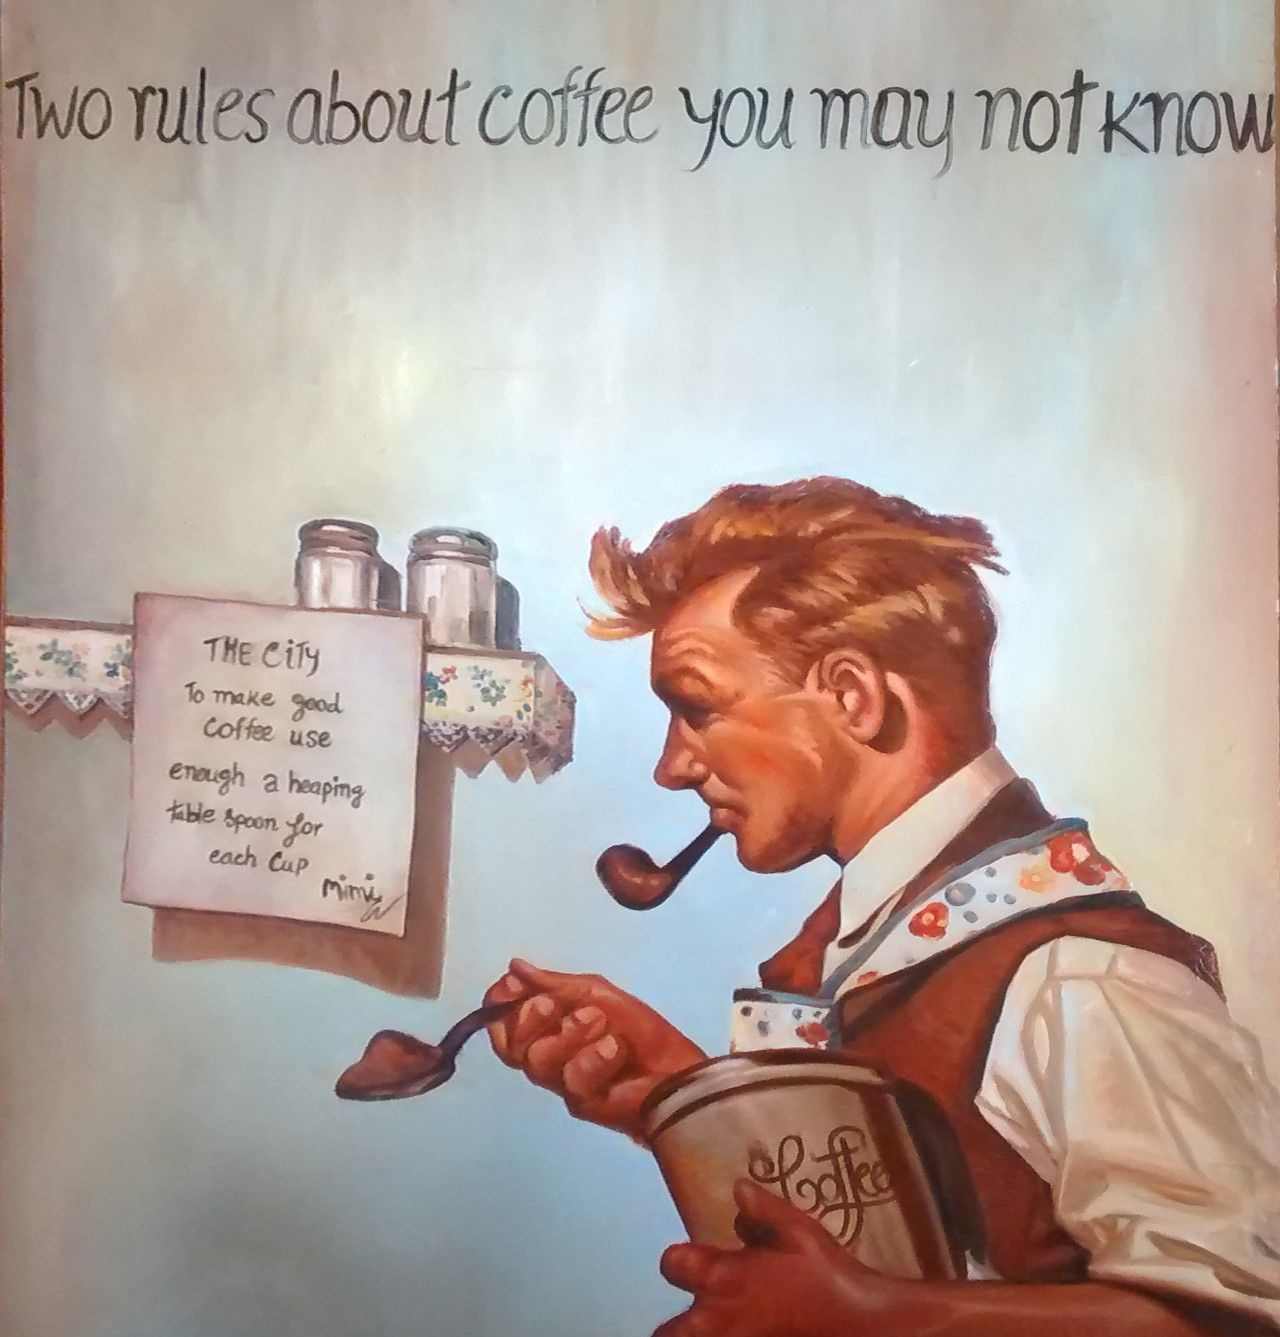 Two rules about coffee you may not know